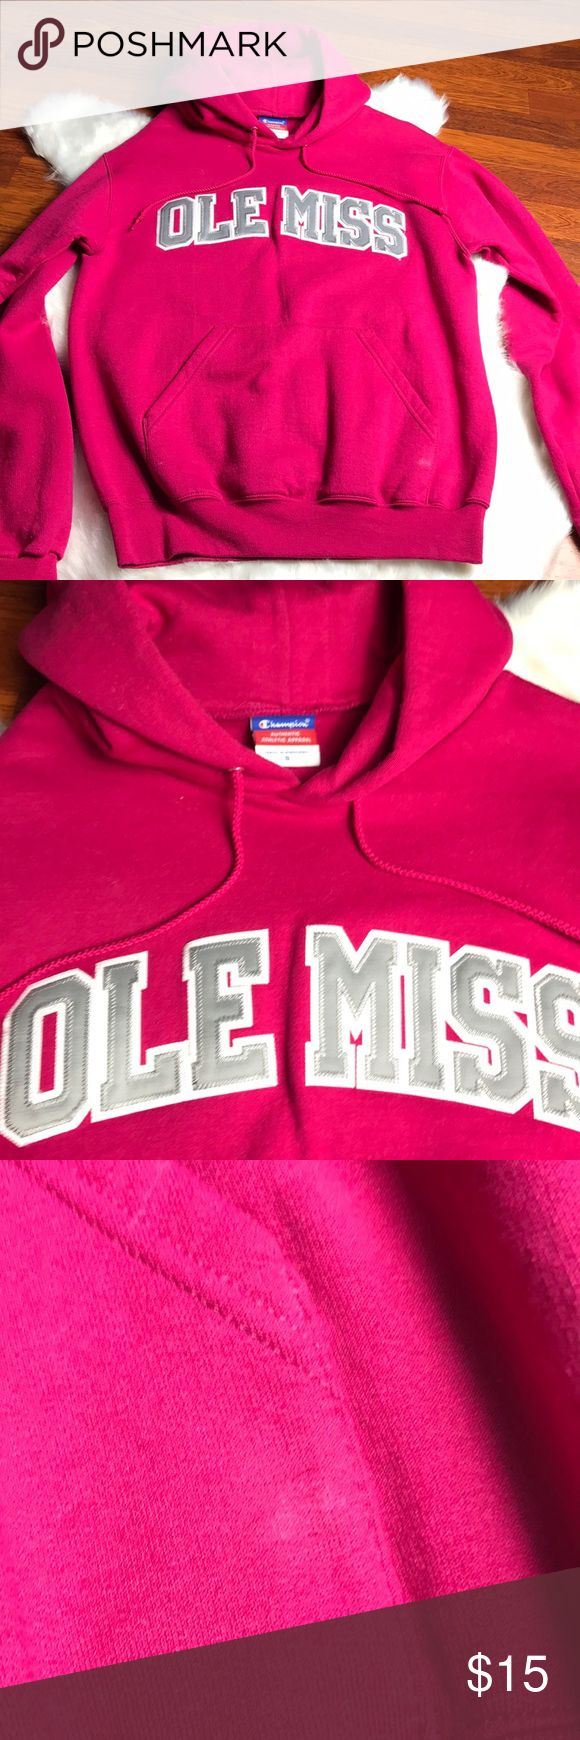 Women's Ole Miss Hoodie Hot Pink Ole Miss Hoodie, in great condition. They have one small spot in pictures that's hasn't been treated.  Looks like just part of the color to me! Champion Jackets & Coats